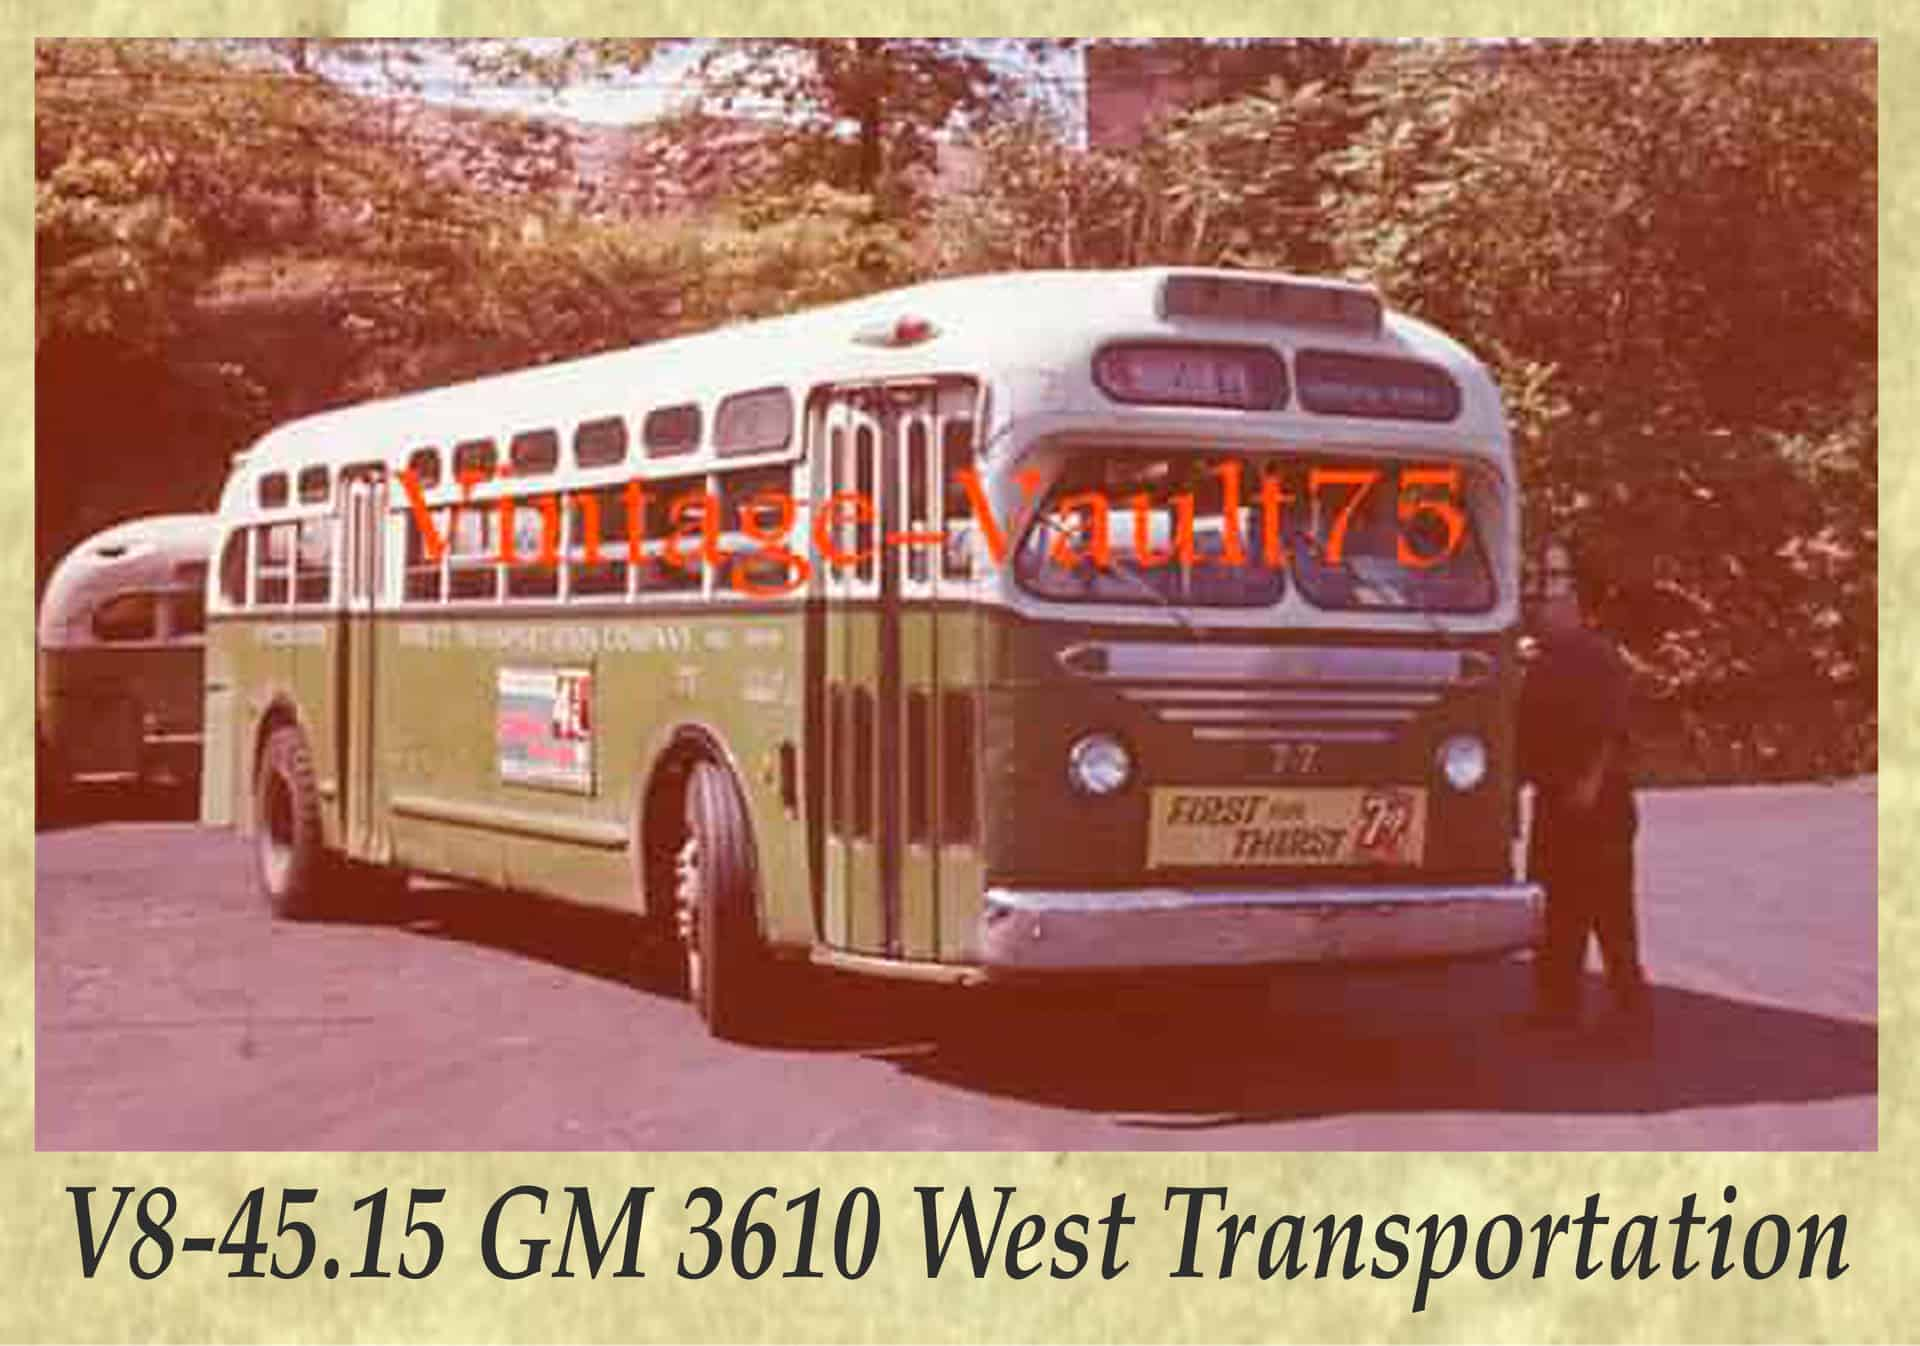 V8-45.15 GM 3610 West Transportation